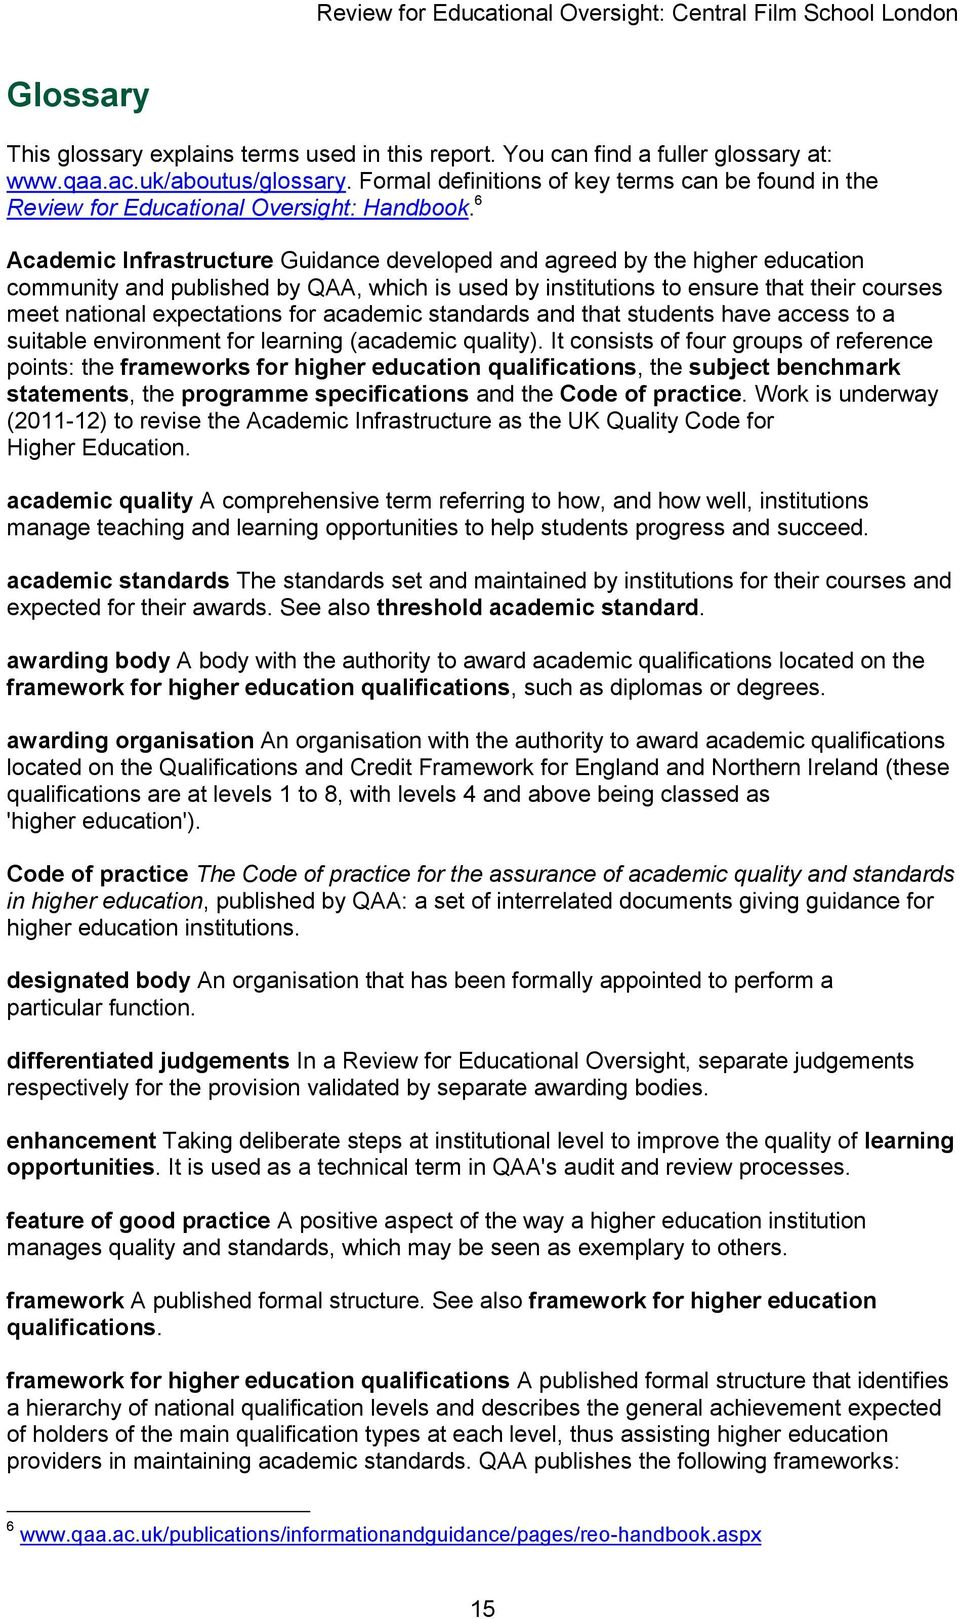 6 Academic Infrastructure Guidance developed and agreed by the higher education community and published by QAA, which is used by institutions to ensure that their courses meet national expectations